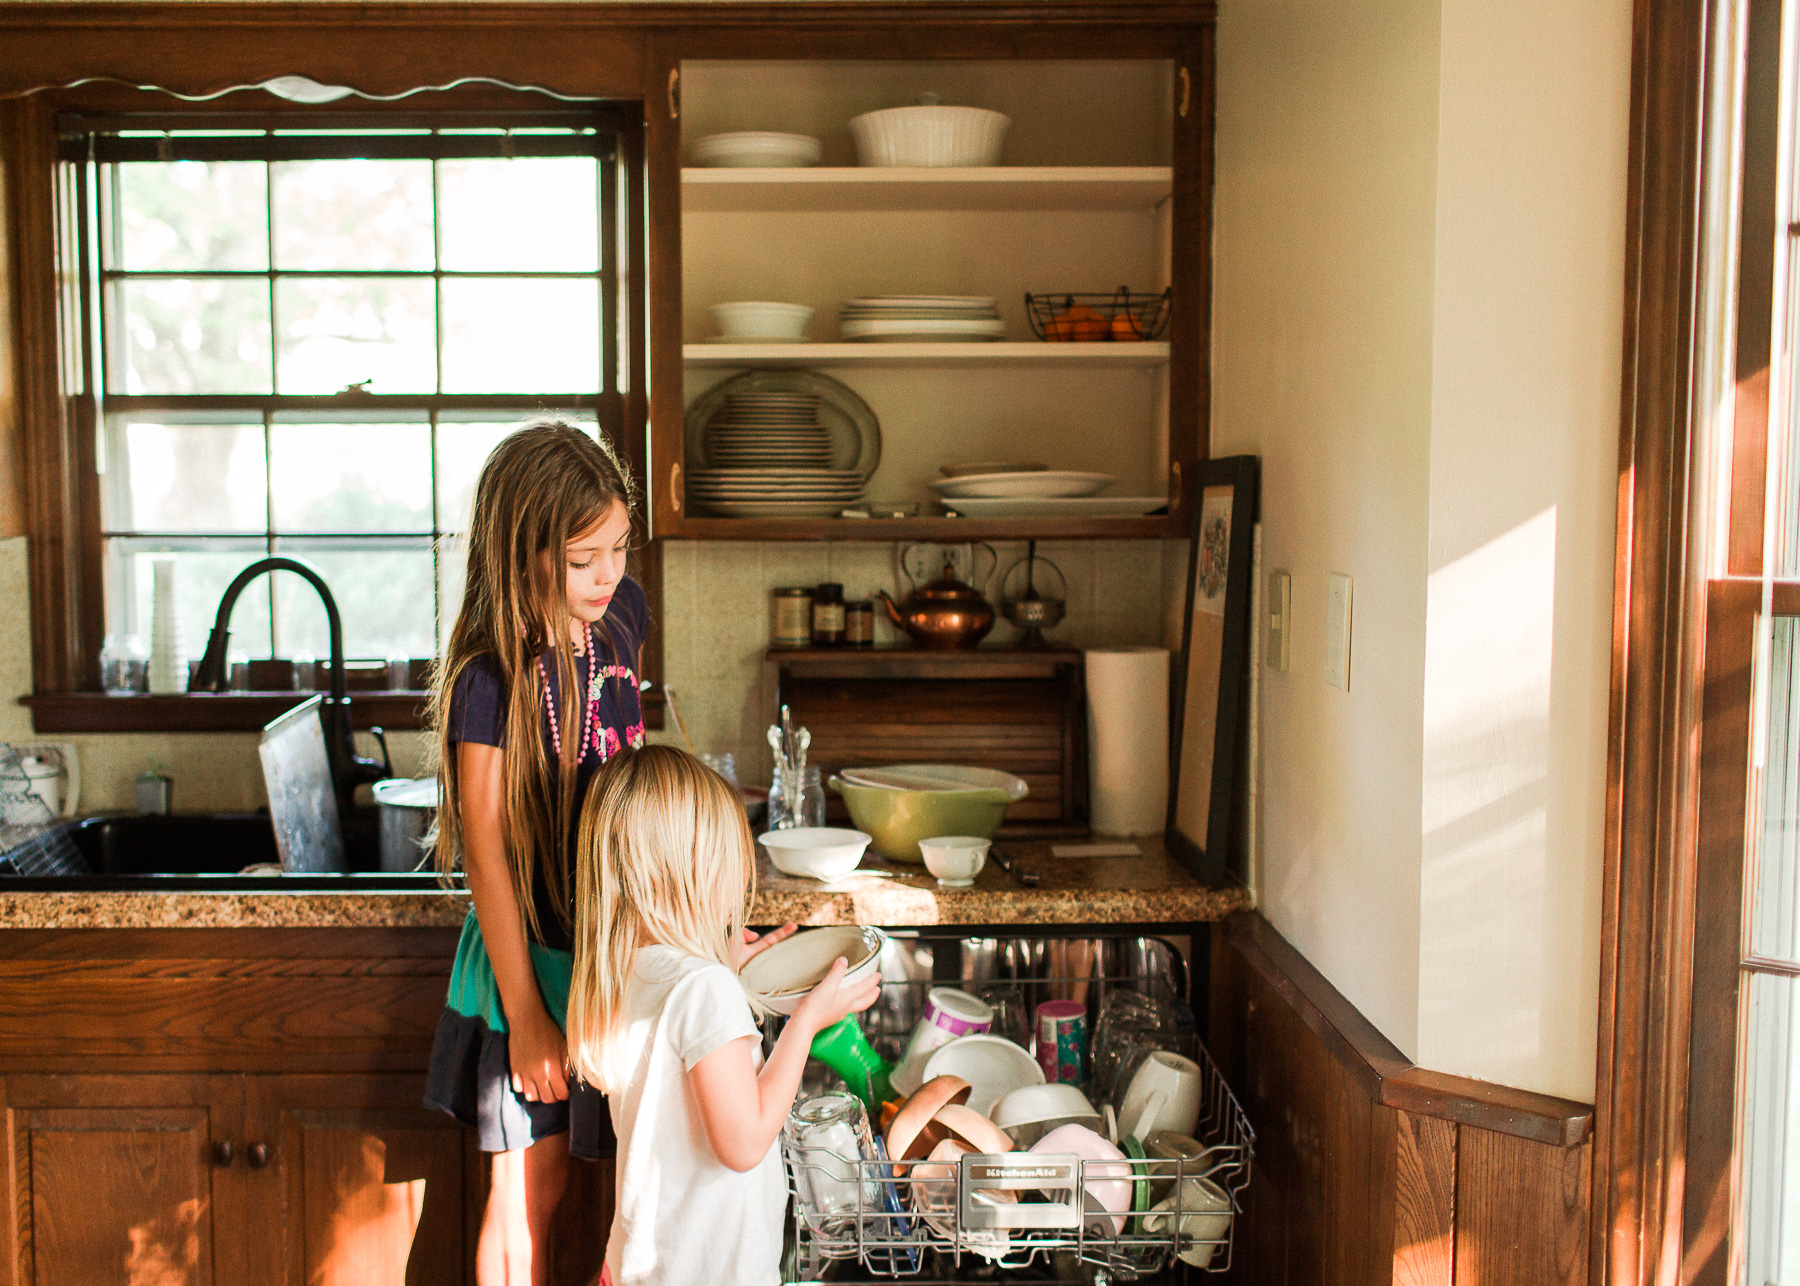 homeschooling girls unloading and loading the dishwasher